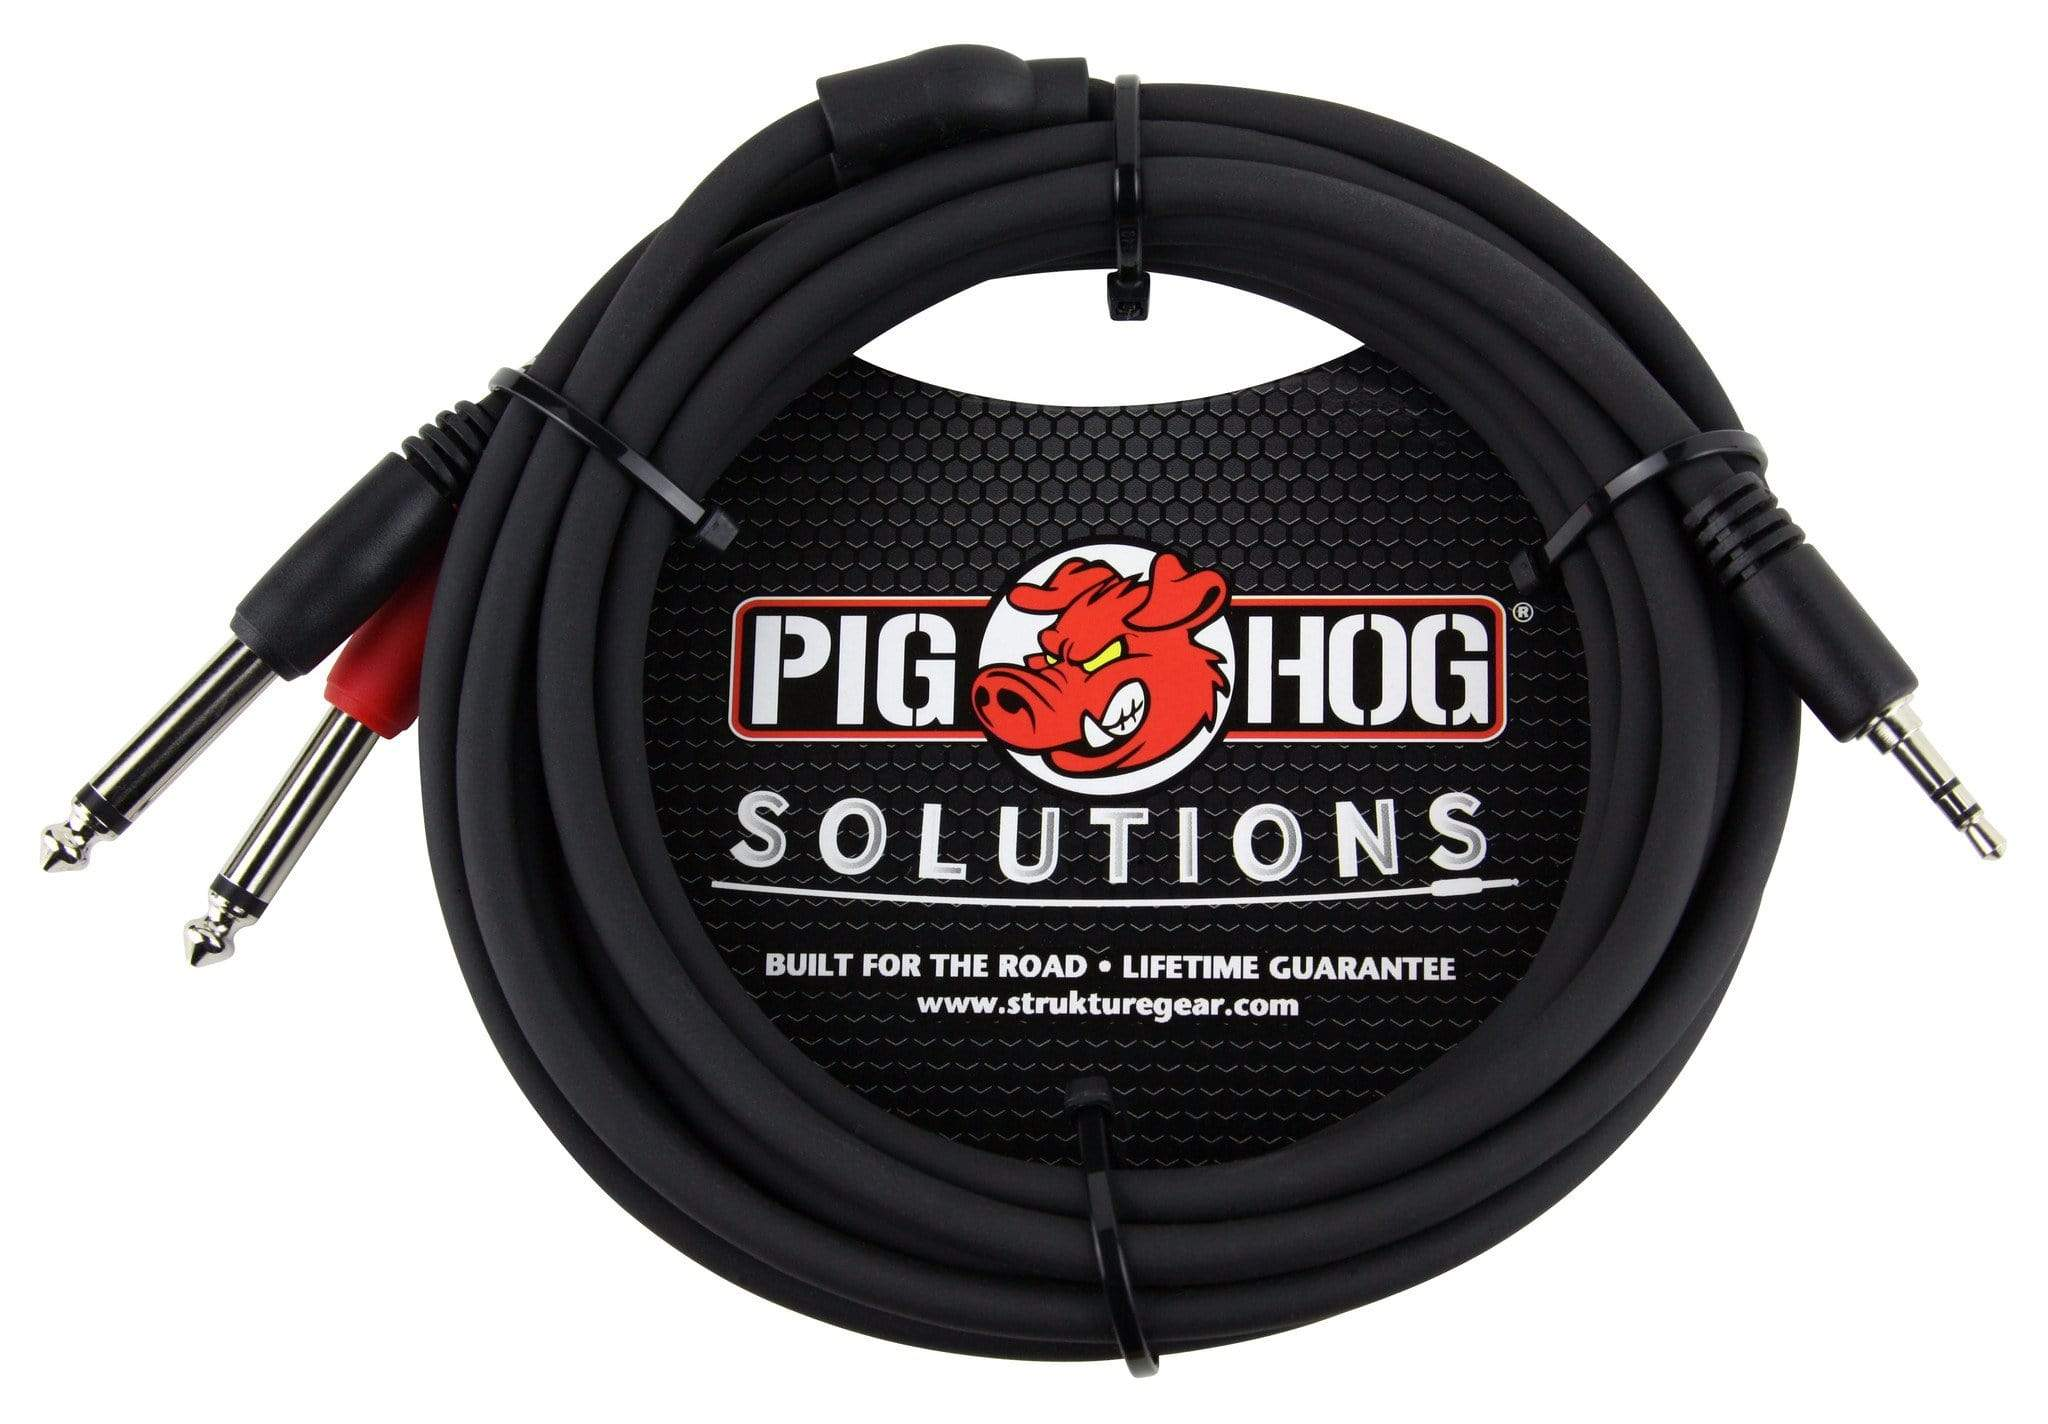 "PIG HOG TRS INSERT CABLES Pig Hog 10ft 3.5mm Male to Dual 1/4"" Male Stereo Breakout Cable TRS Mini 1/8"""